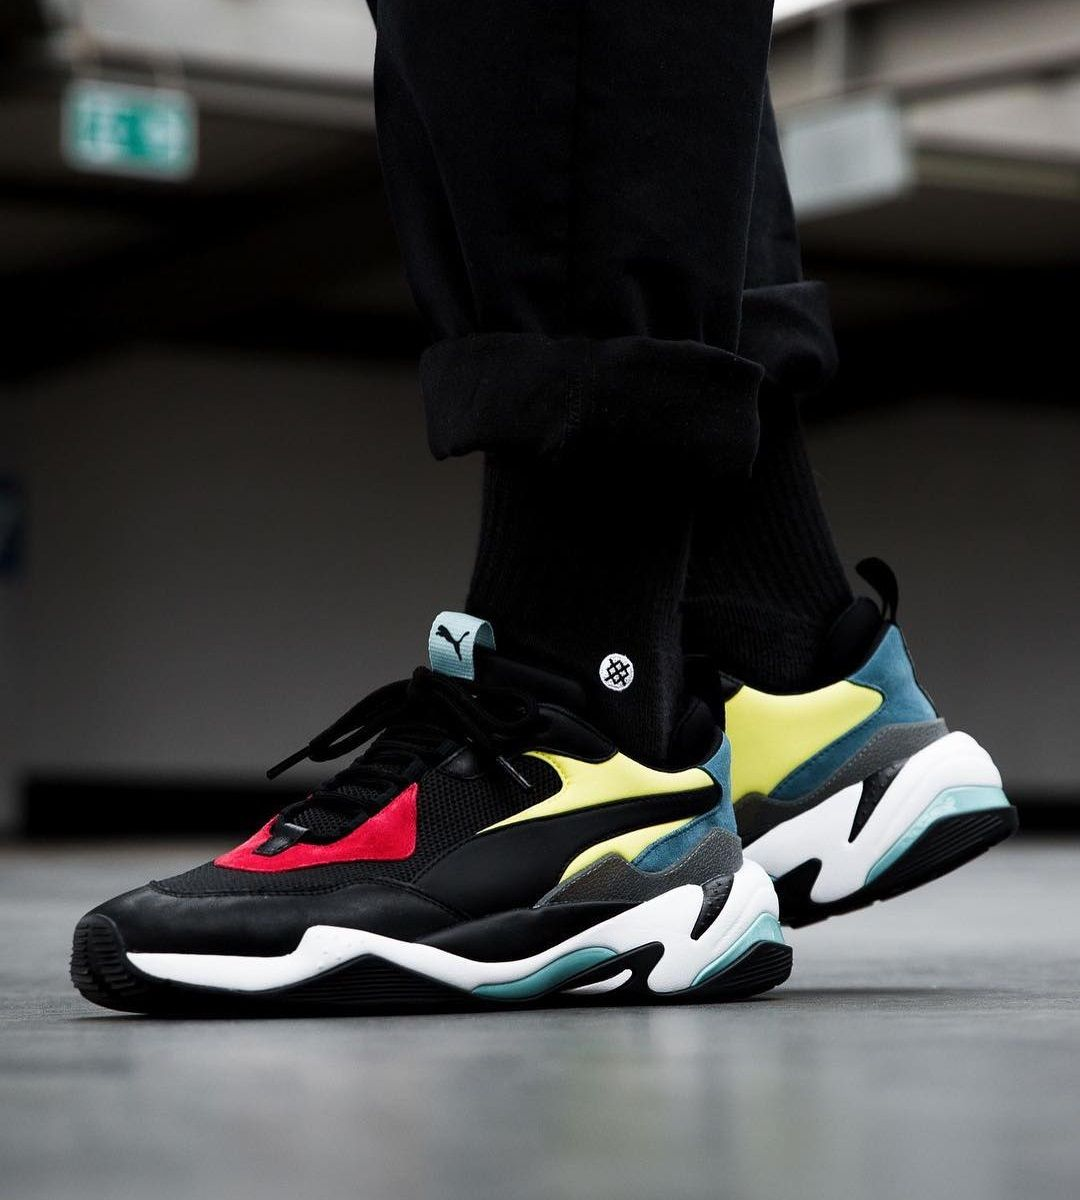 quality design 8c223 442d3 PUMA Thunder Spectra (Upcoming Dad Shoes)